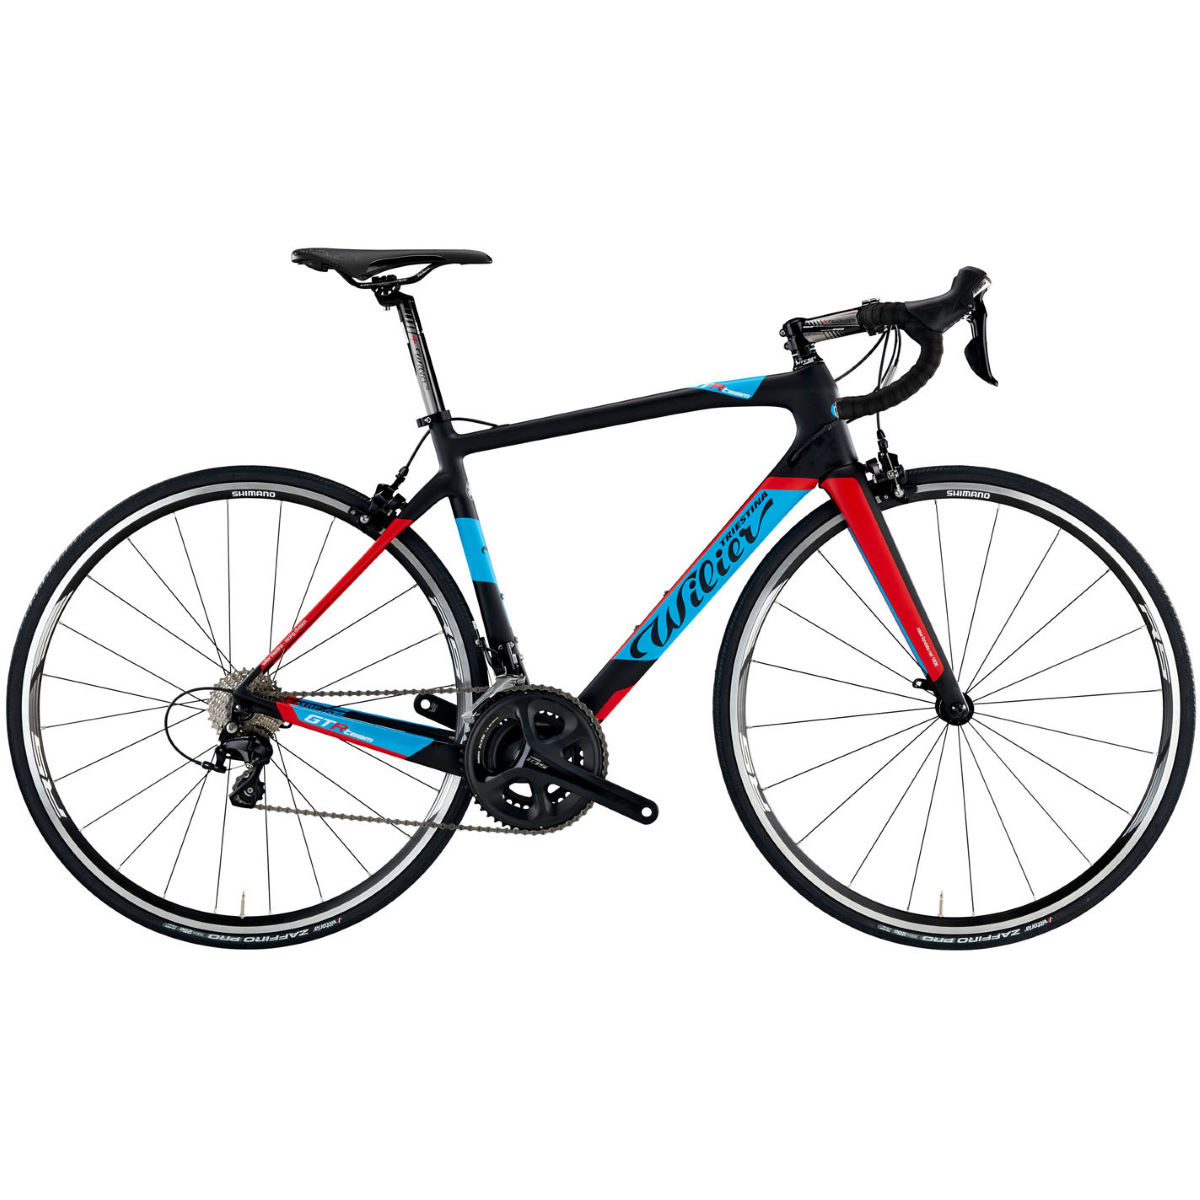 Wilier GTR Team Road Bike (105 - 2018) - Bicicletas de carretera